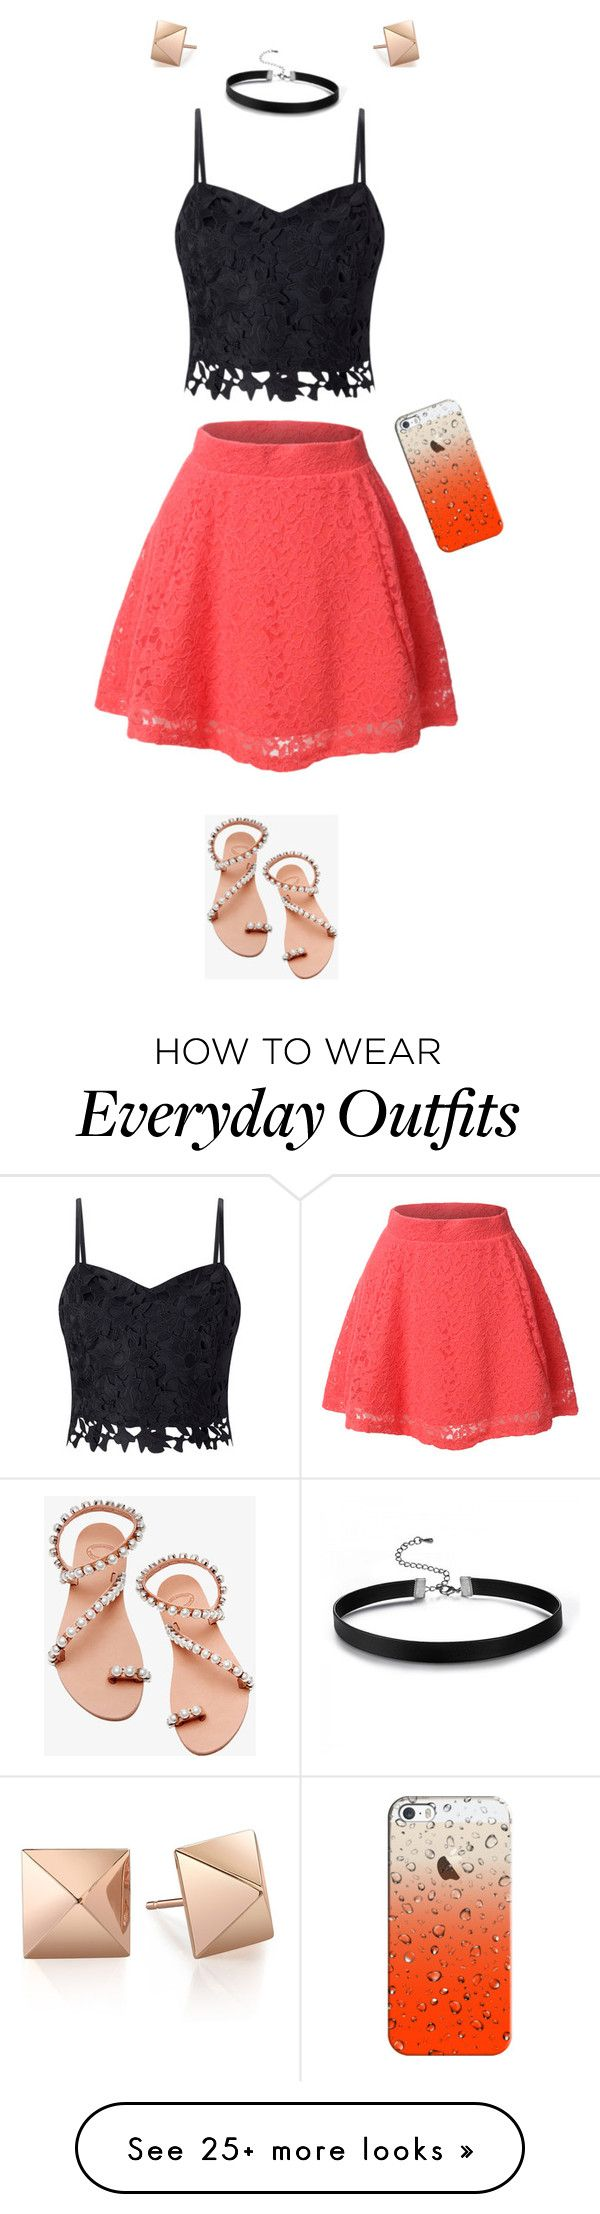 """Everyday outfit (designed by Isa)"" by lizziep123 on Polyvore featuring LE3NO, Lipsy, Elina Linardaki and Casetify http://amzn.to/2k2HTMQ"